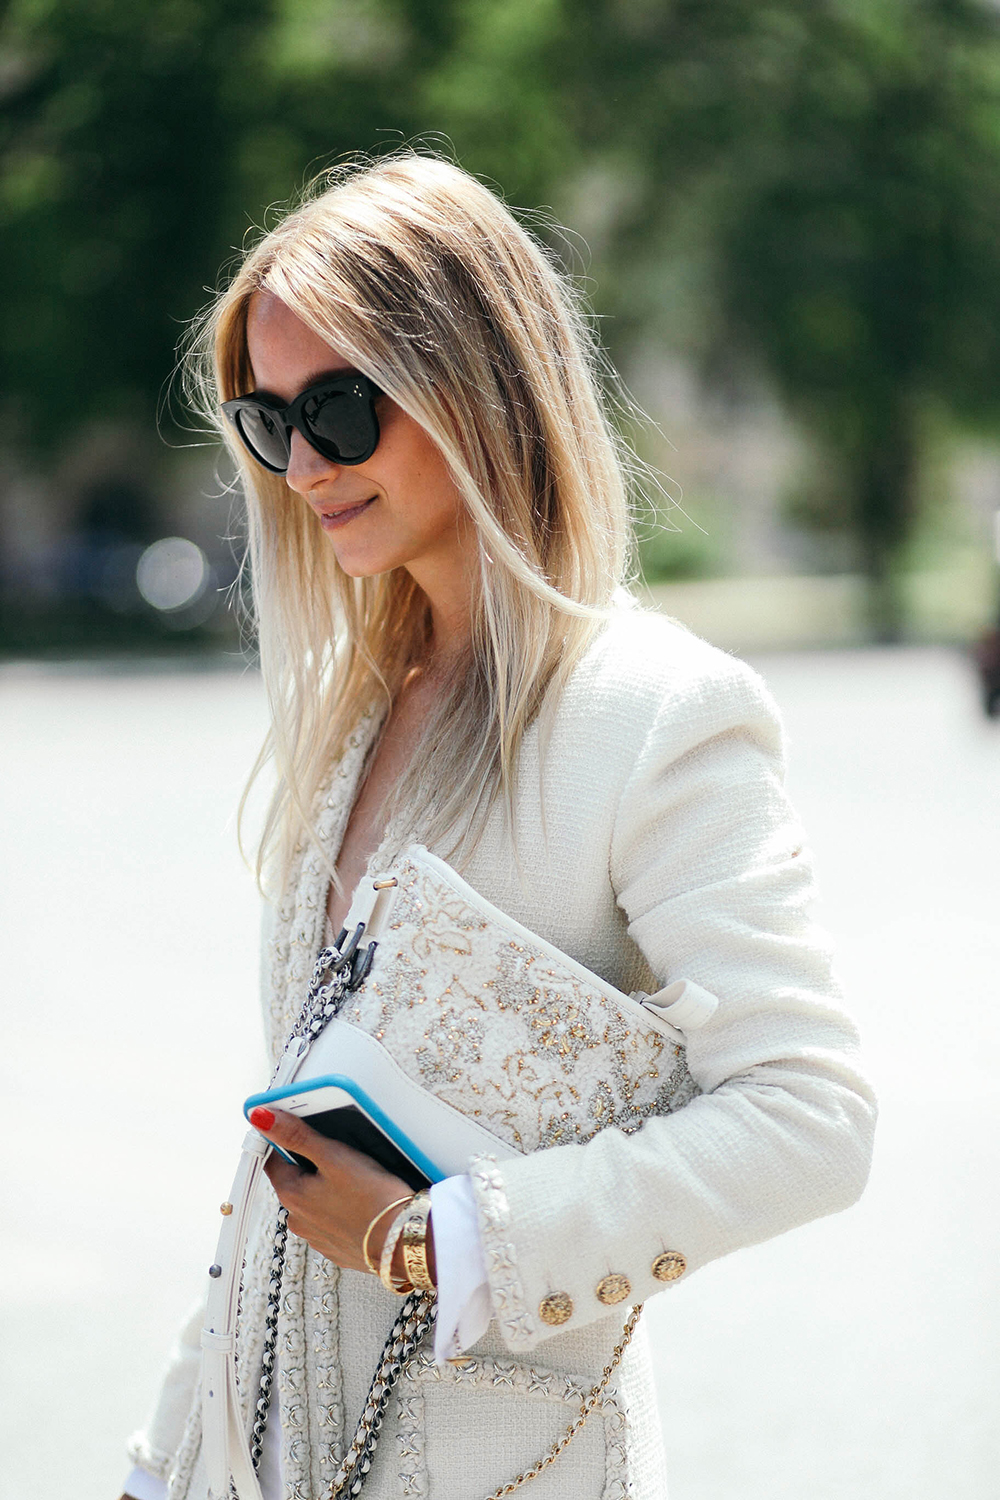 Charlotte Groeneveld Thefashionguitar attends the Chanel Haute Couture show in Paris